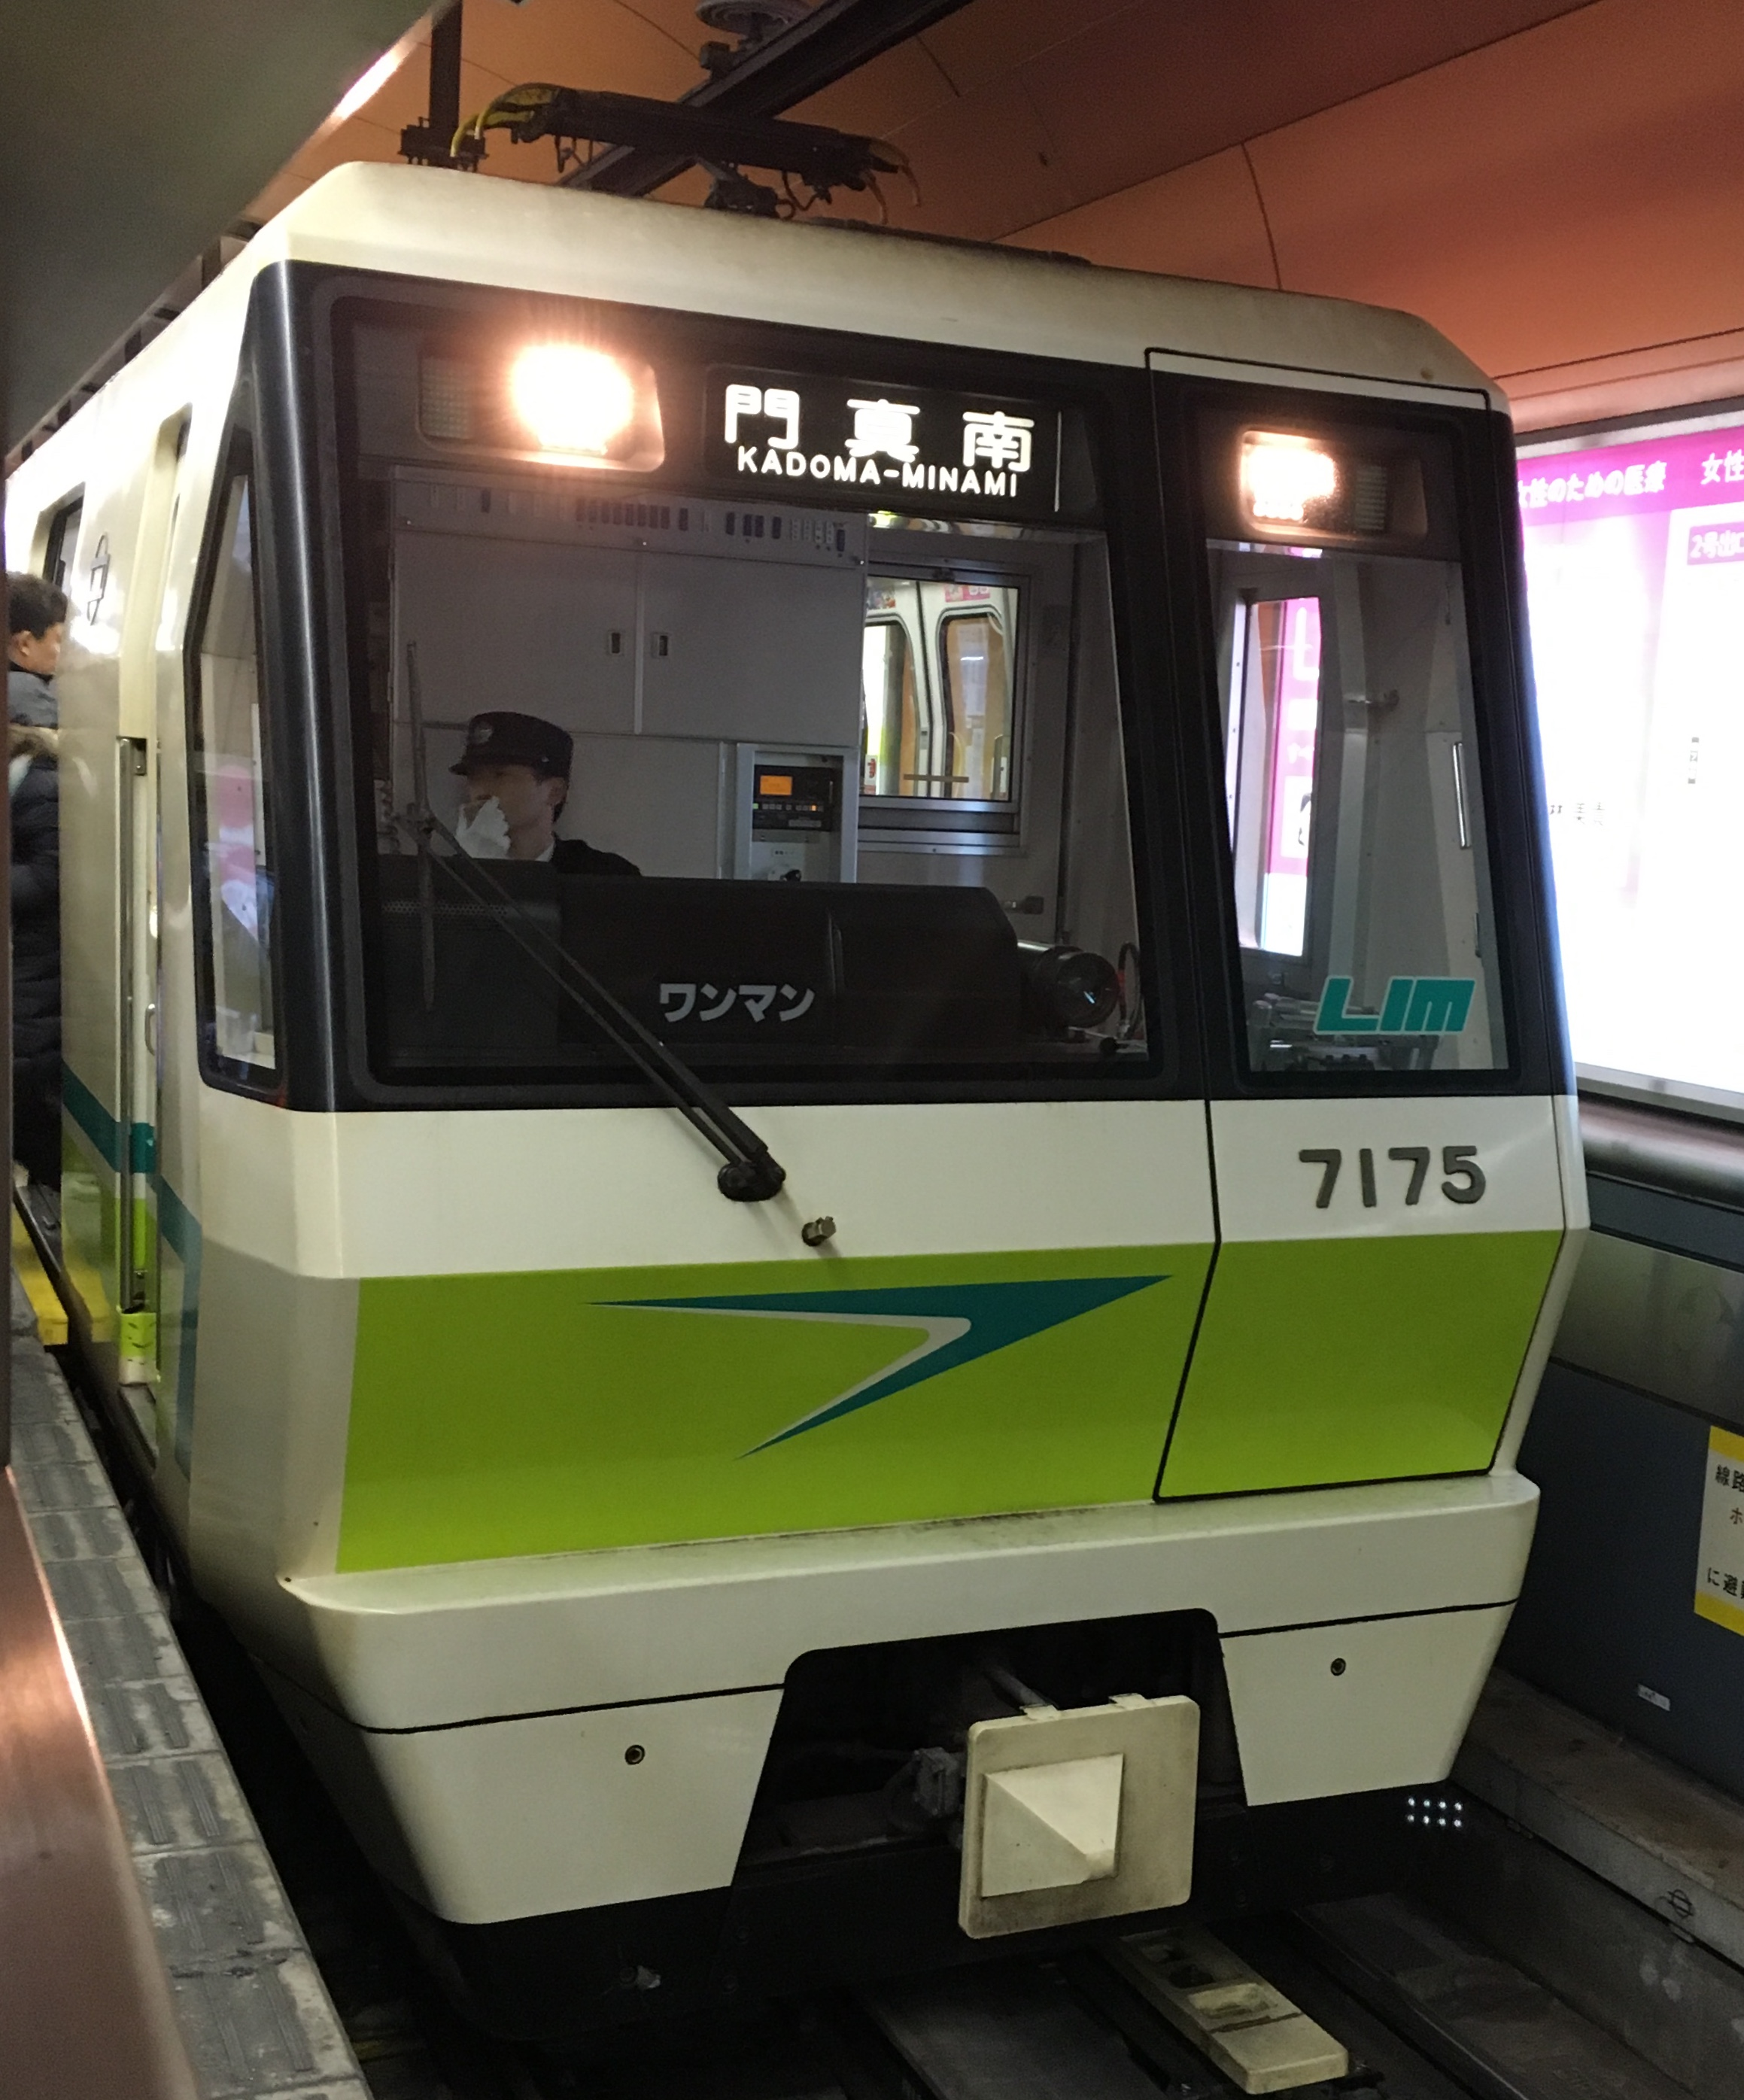 green and white nagahori train of the Osaka's subway system about to depart